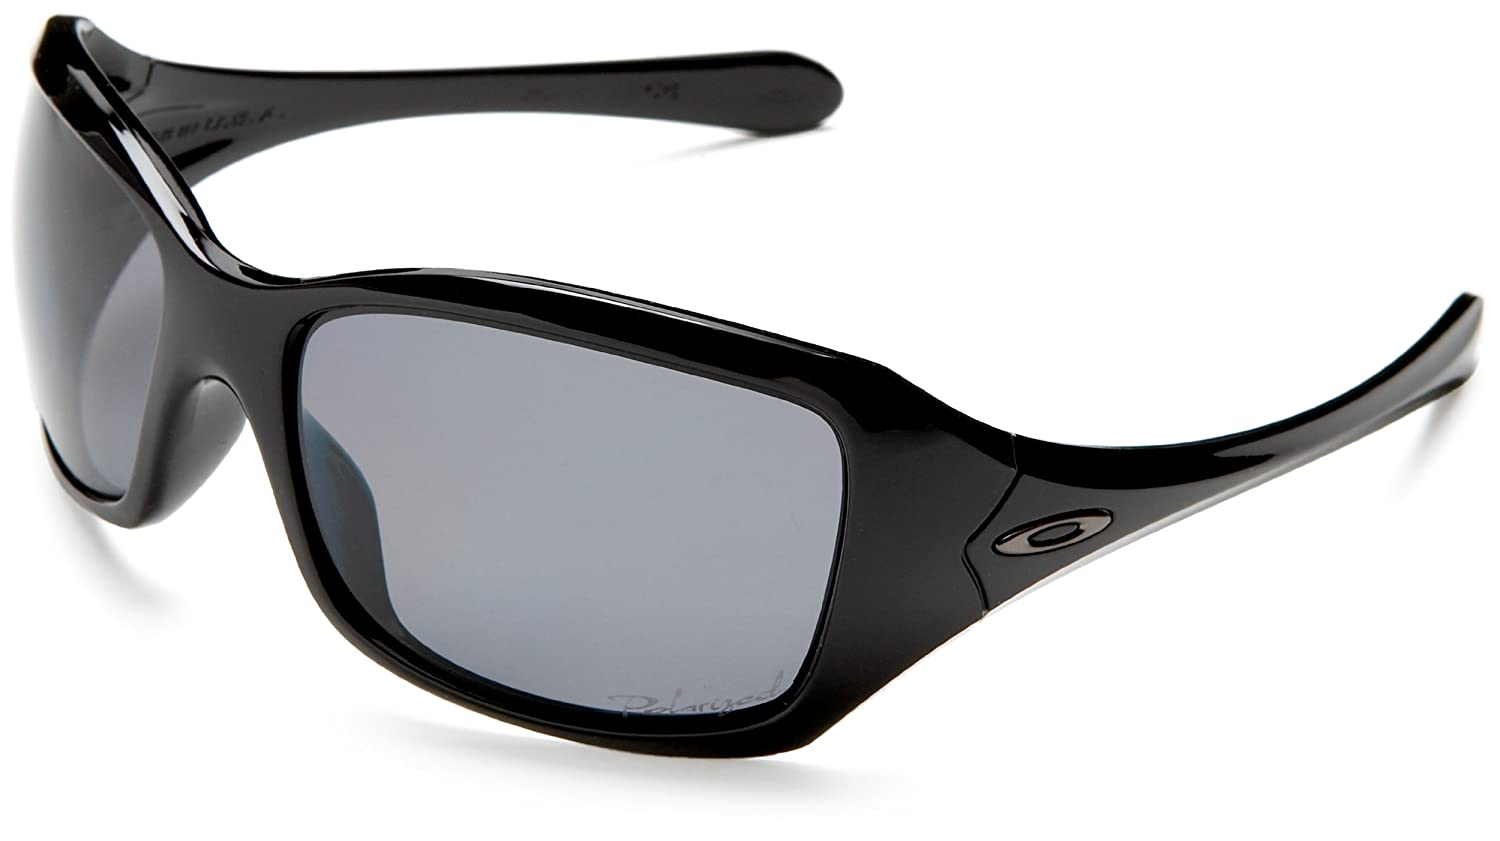 82d4da1bfb0 Amazon.com  Oakley Women s Ravishing Polarized Sunglasses